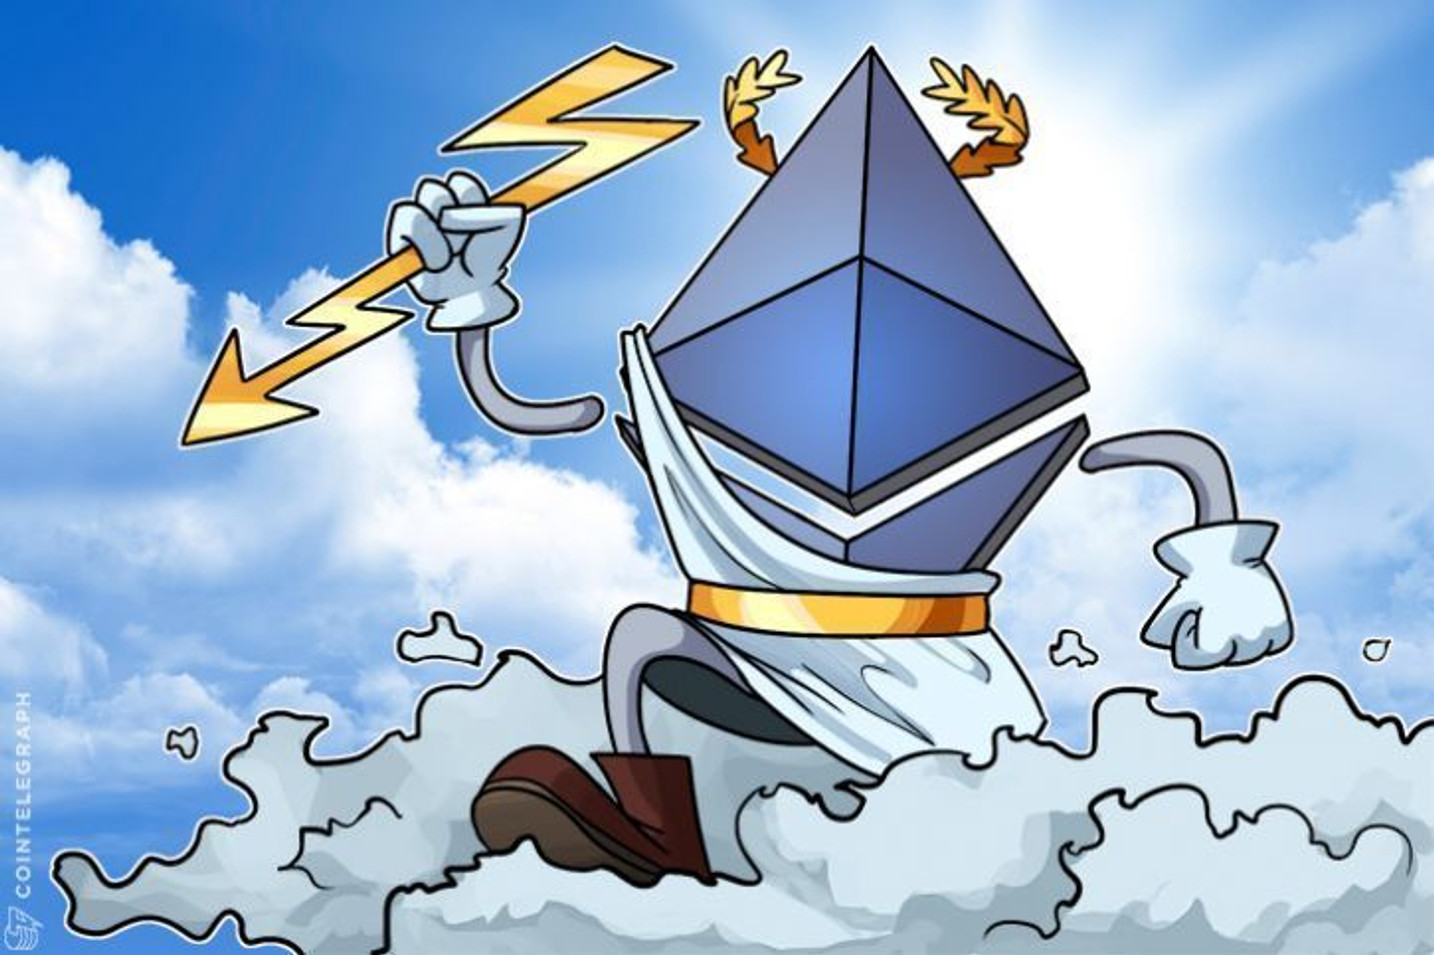 Ether Hits New Record Price High Over $900 Following Month of Strong Growth